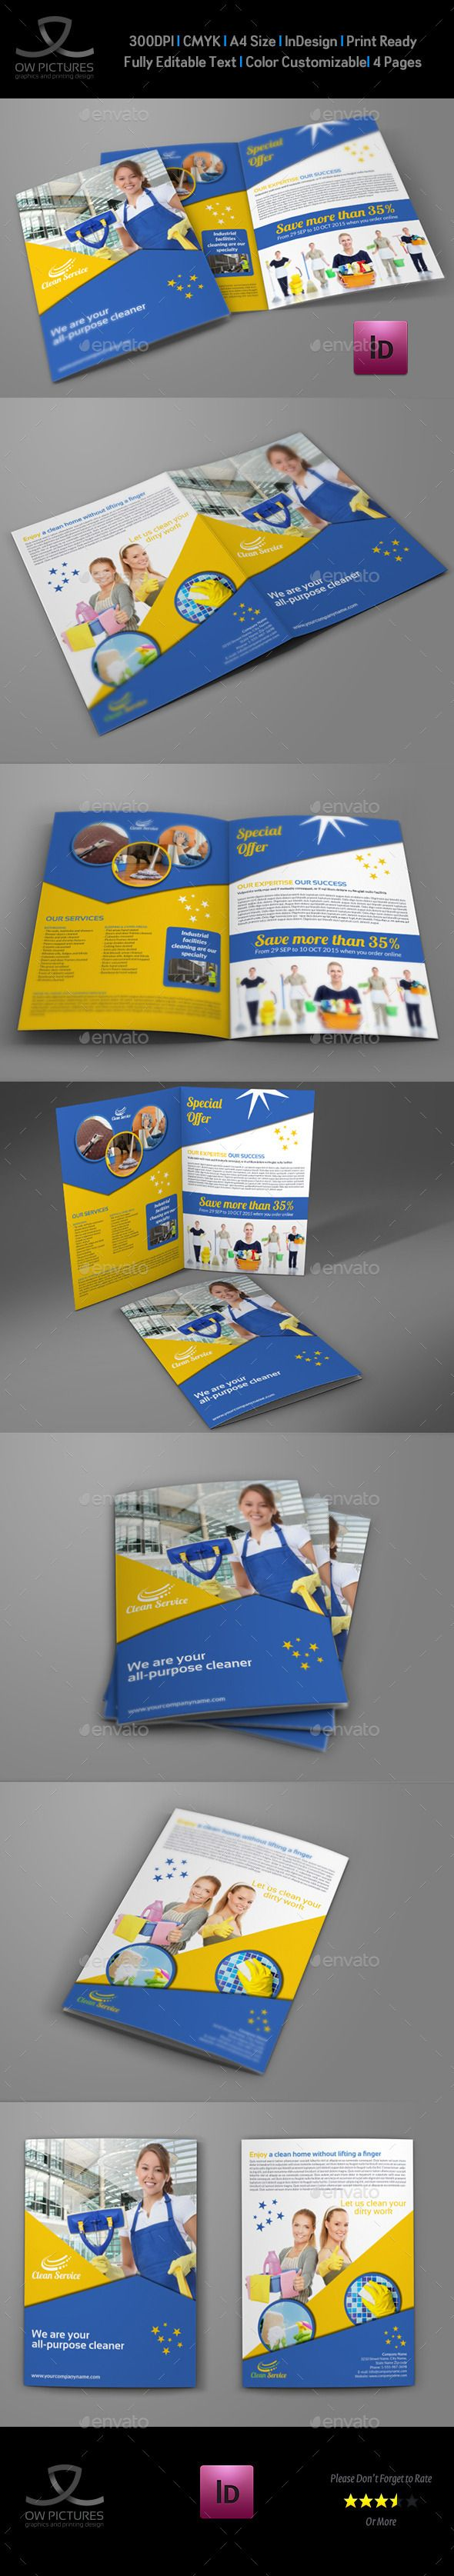 best ideas about cleaning services company cleaning services company bi fold brochure